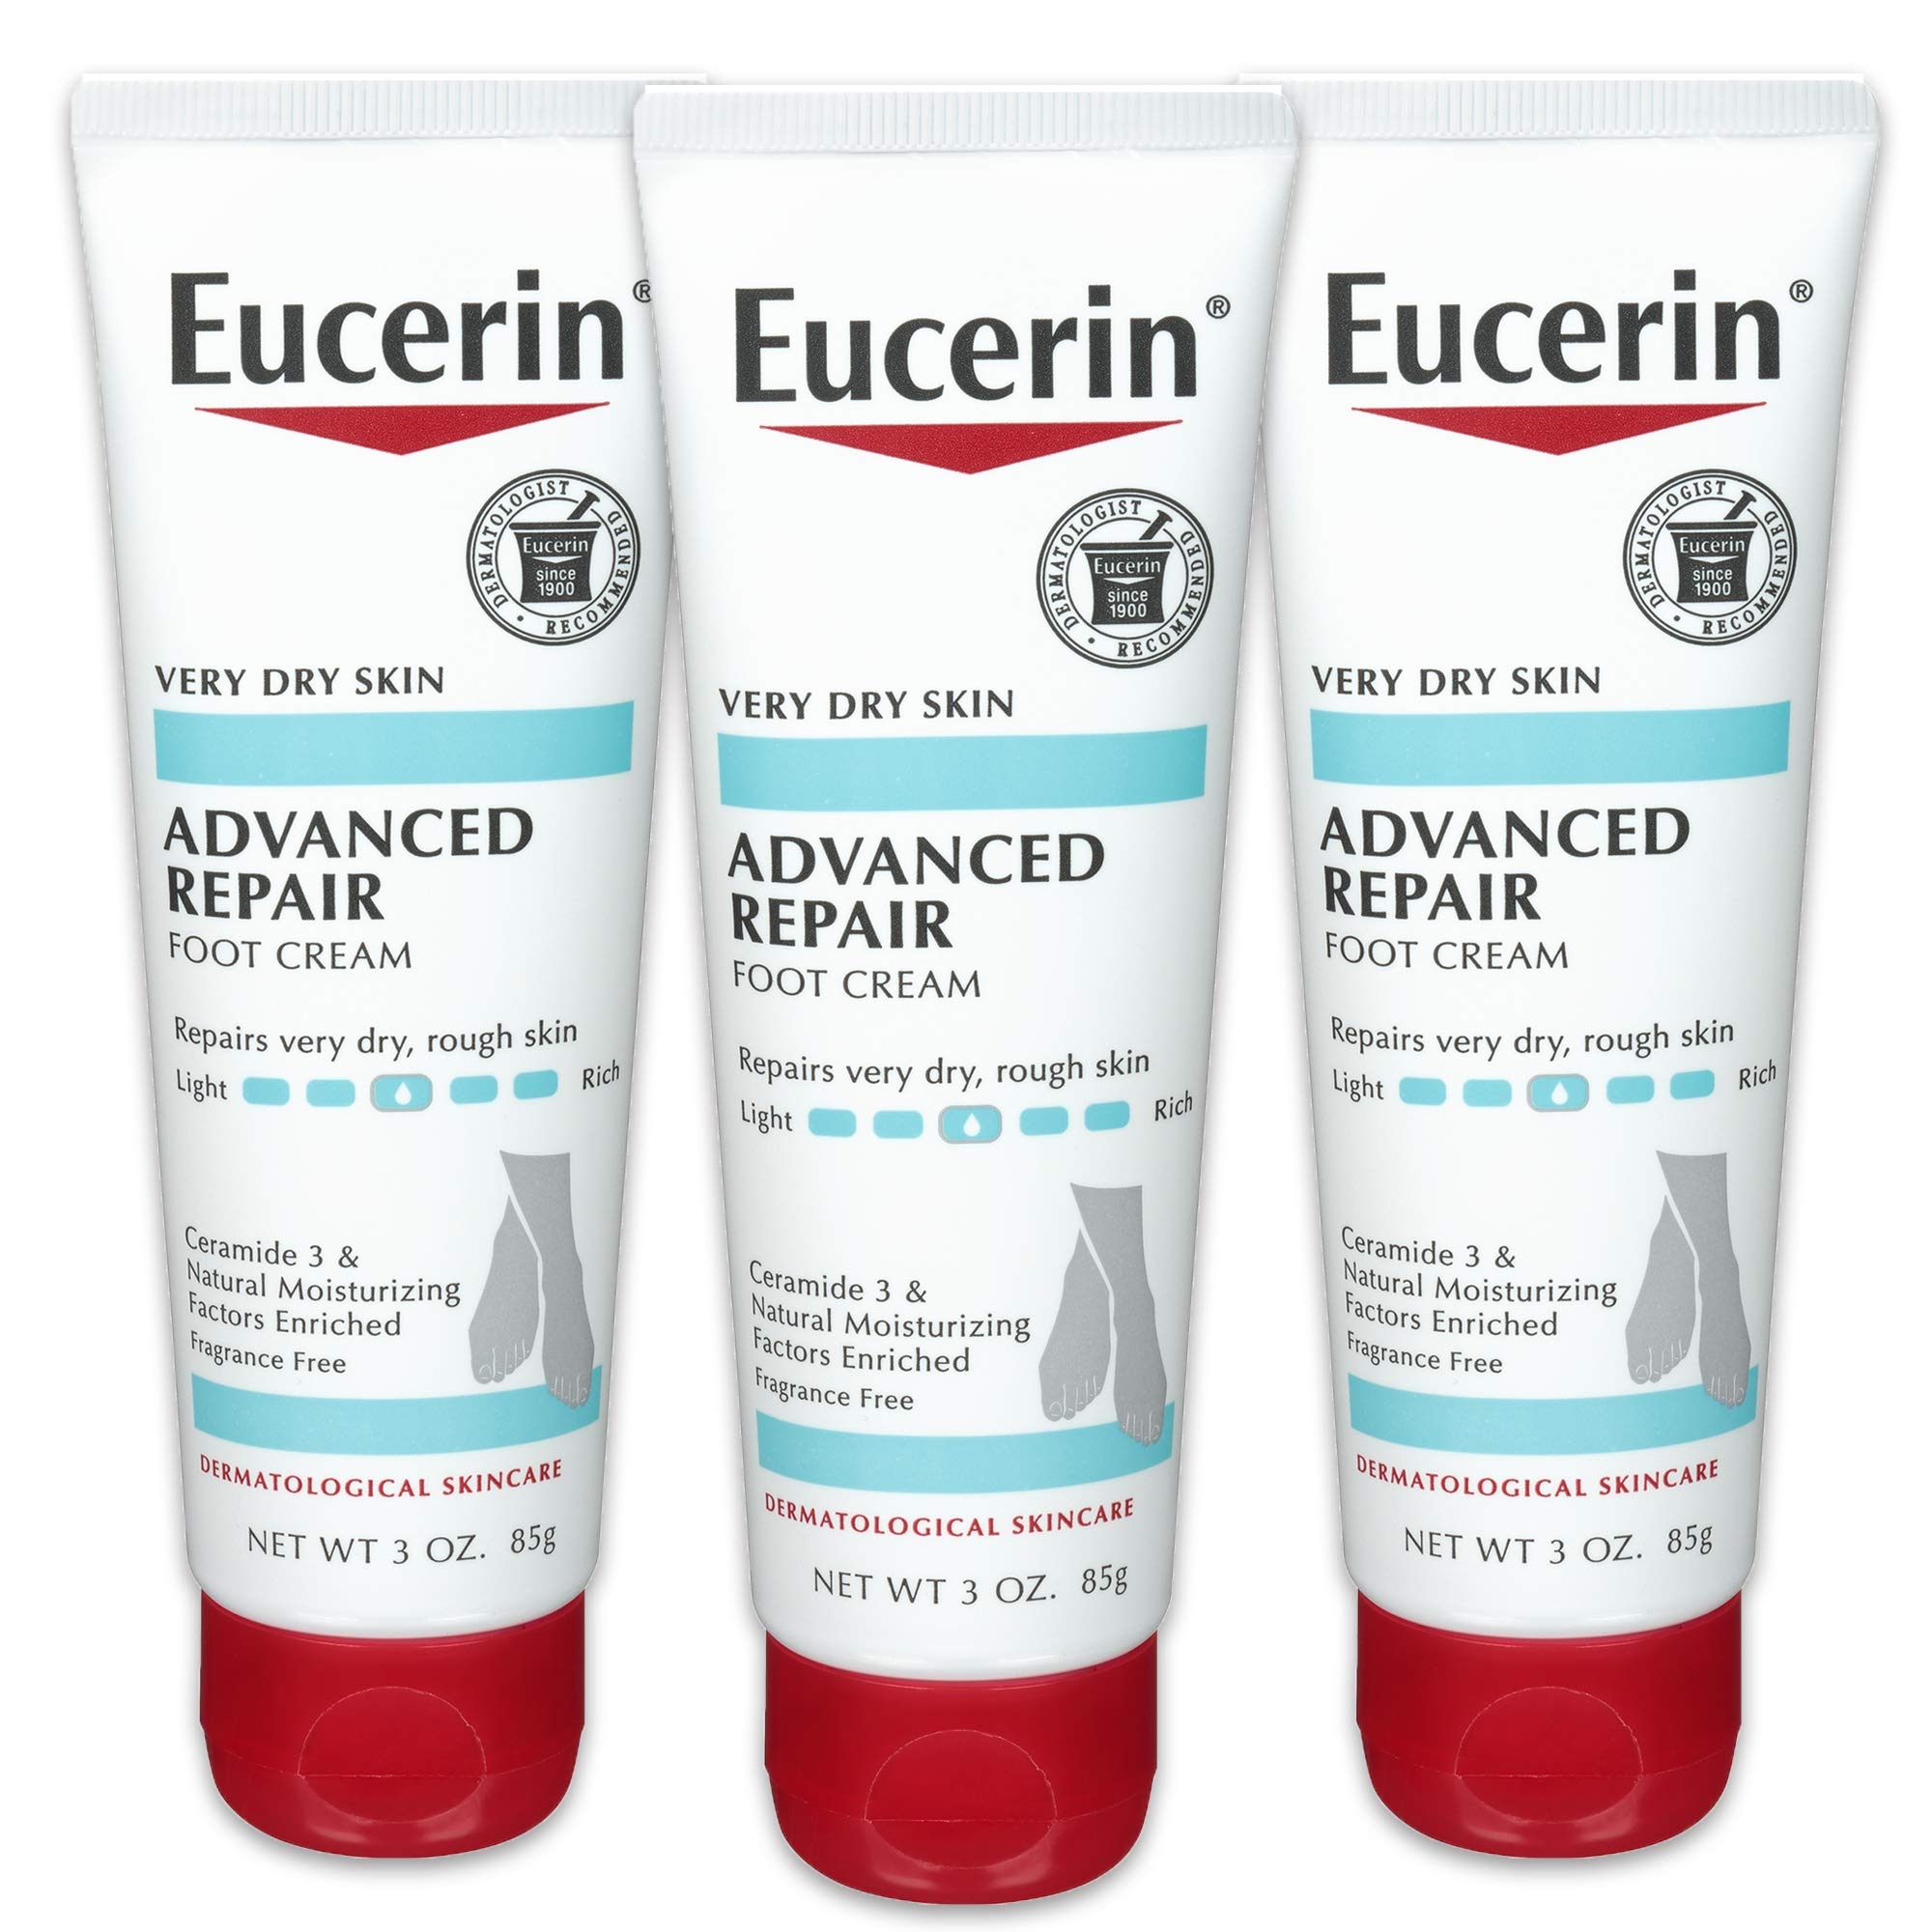 Eucerin Advanced Repair Foot Cream - Fragrance Free, Foot Lotion for Very Dry Skin - 3 oz. Tube (Pack of 3) by Eucerin